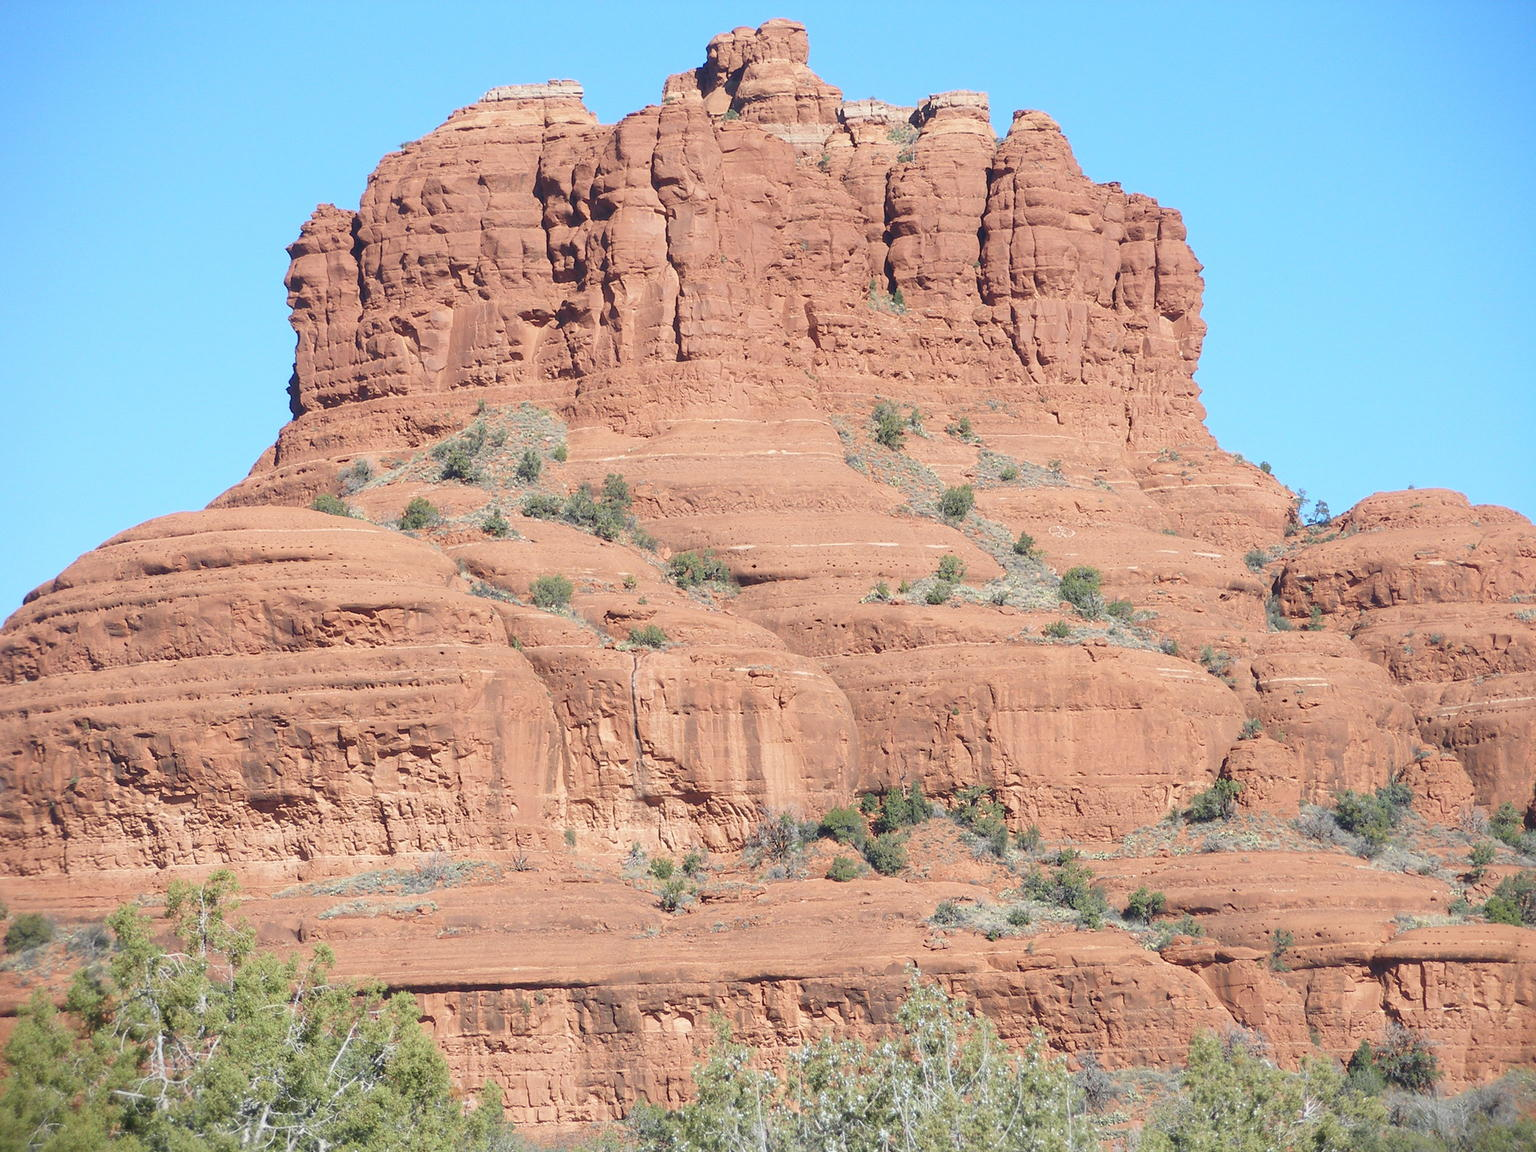 Day Tour to Sedona Red Rock Country and Native American Ruins from Phoenix